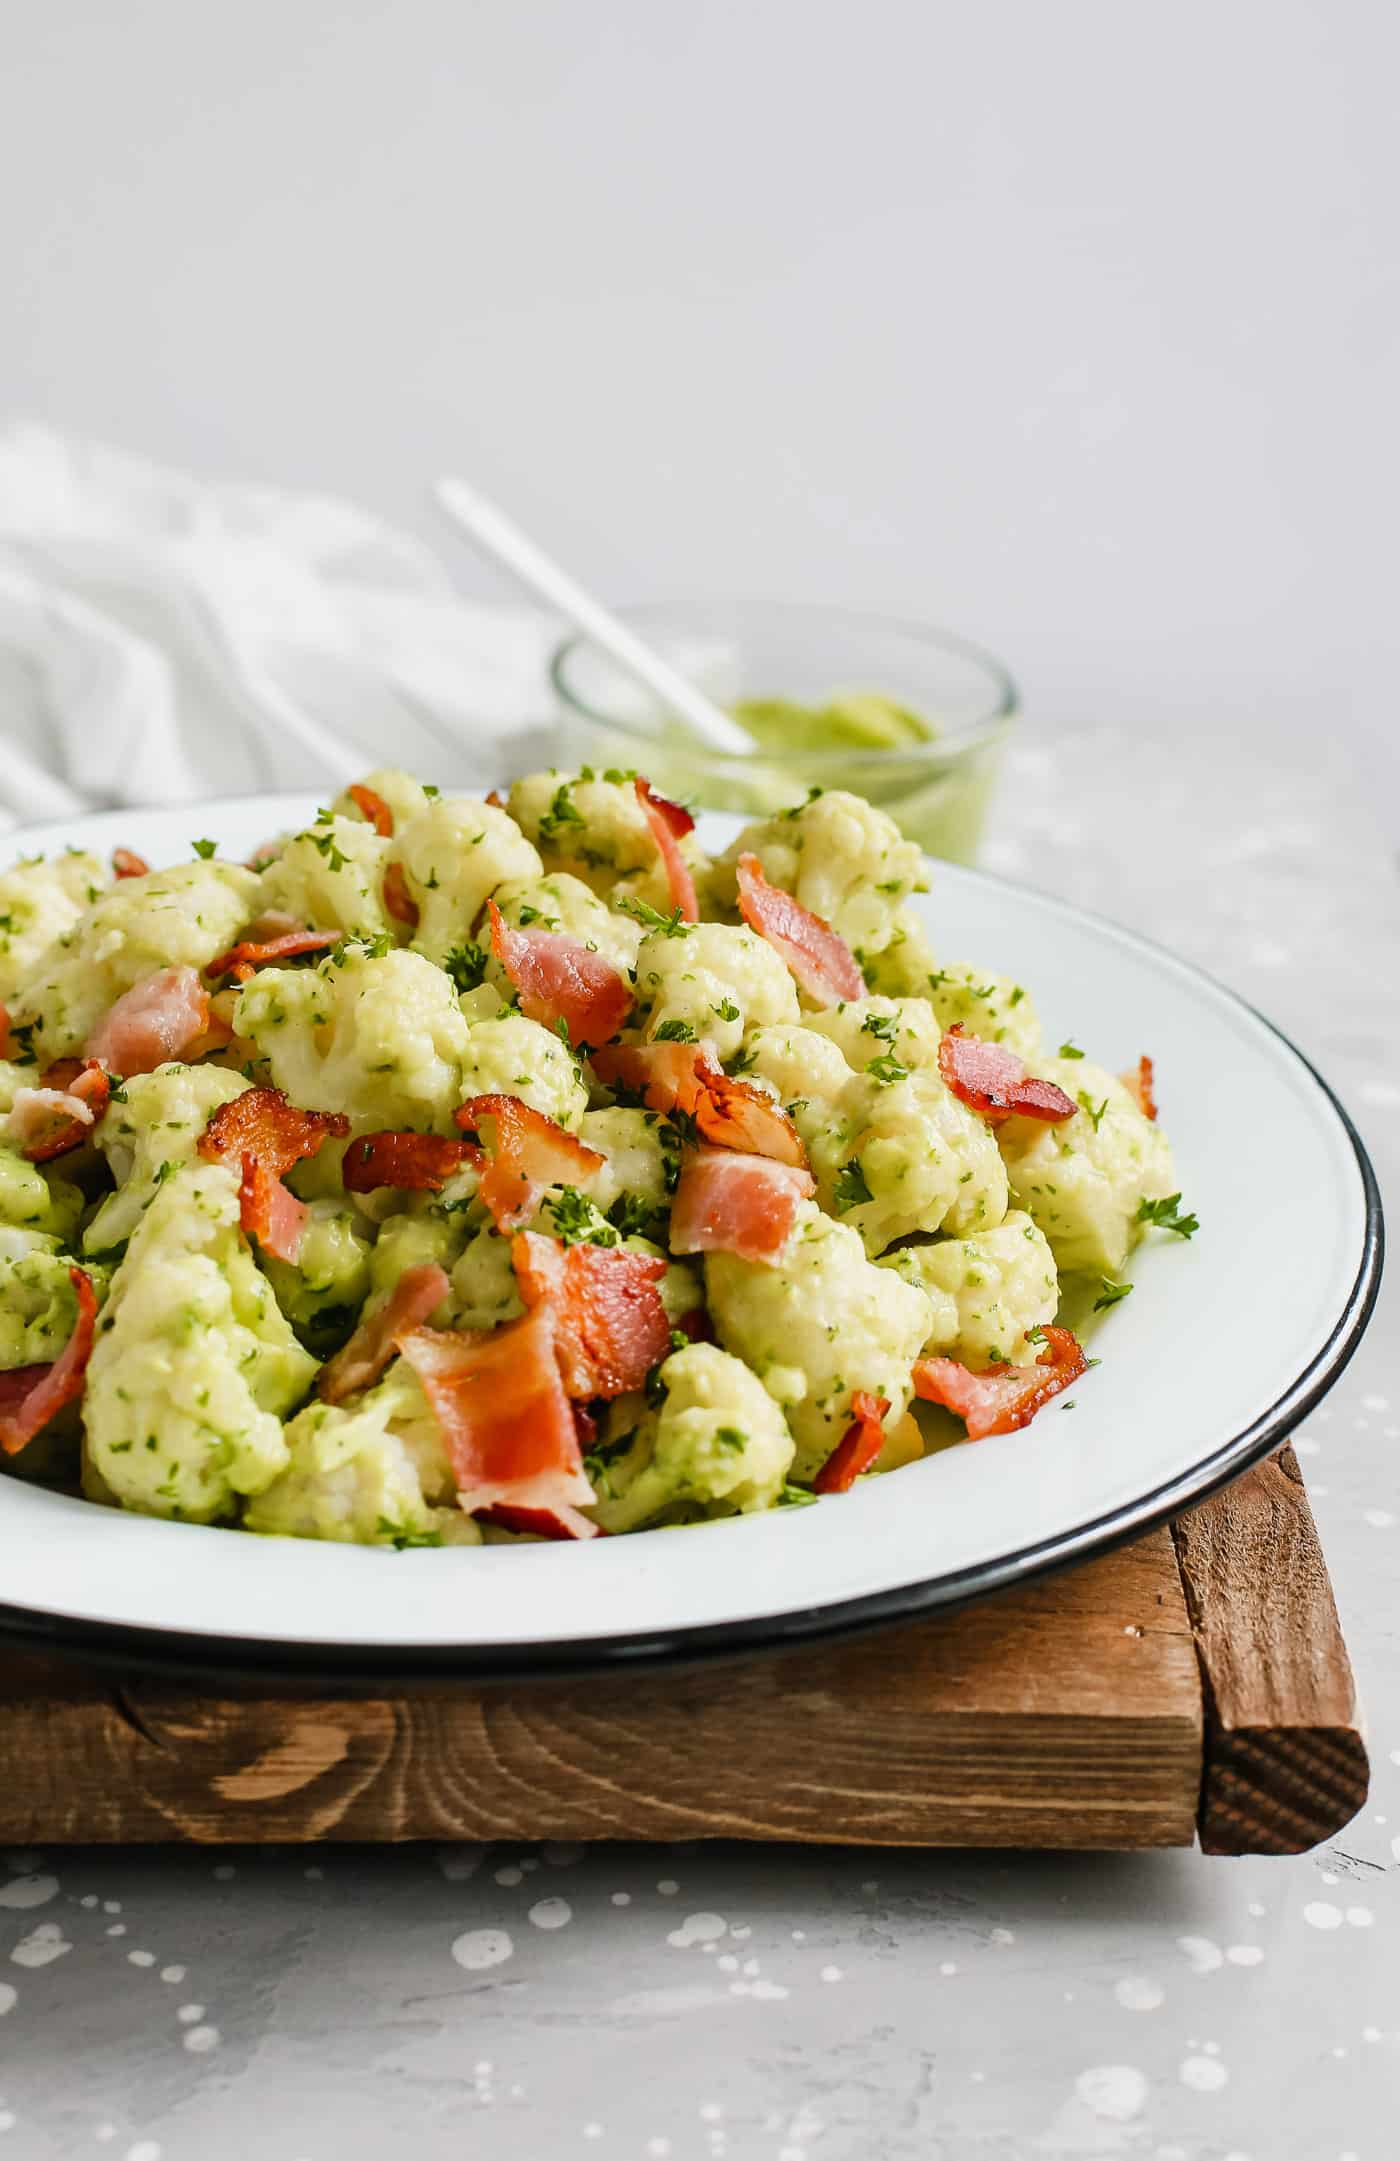 Creamy Avocado Cauliflower Salad Primavera Kitchen